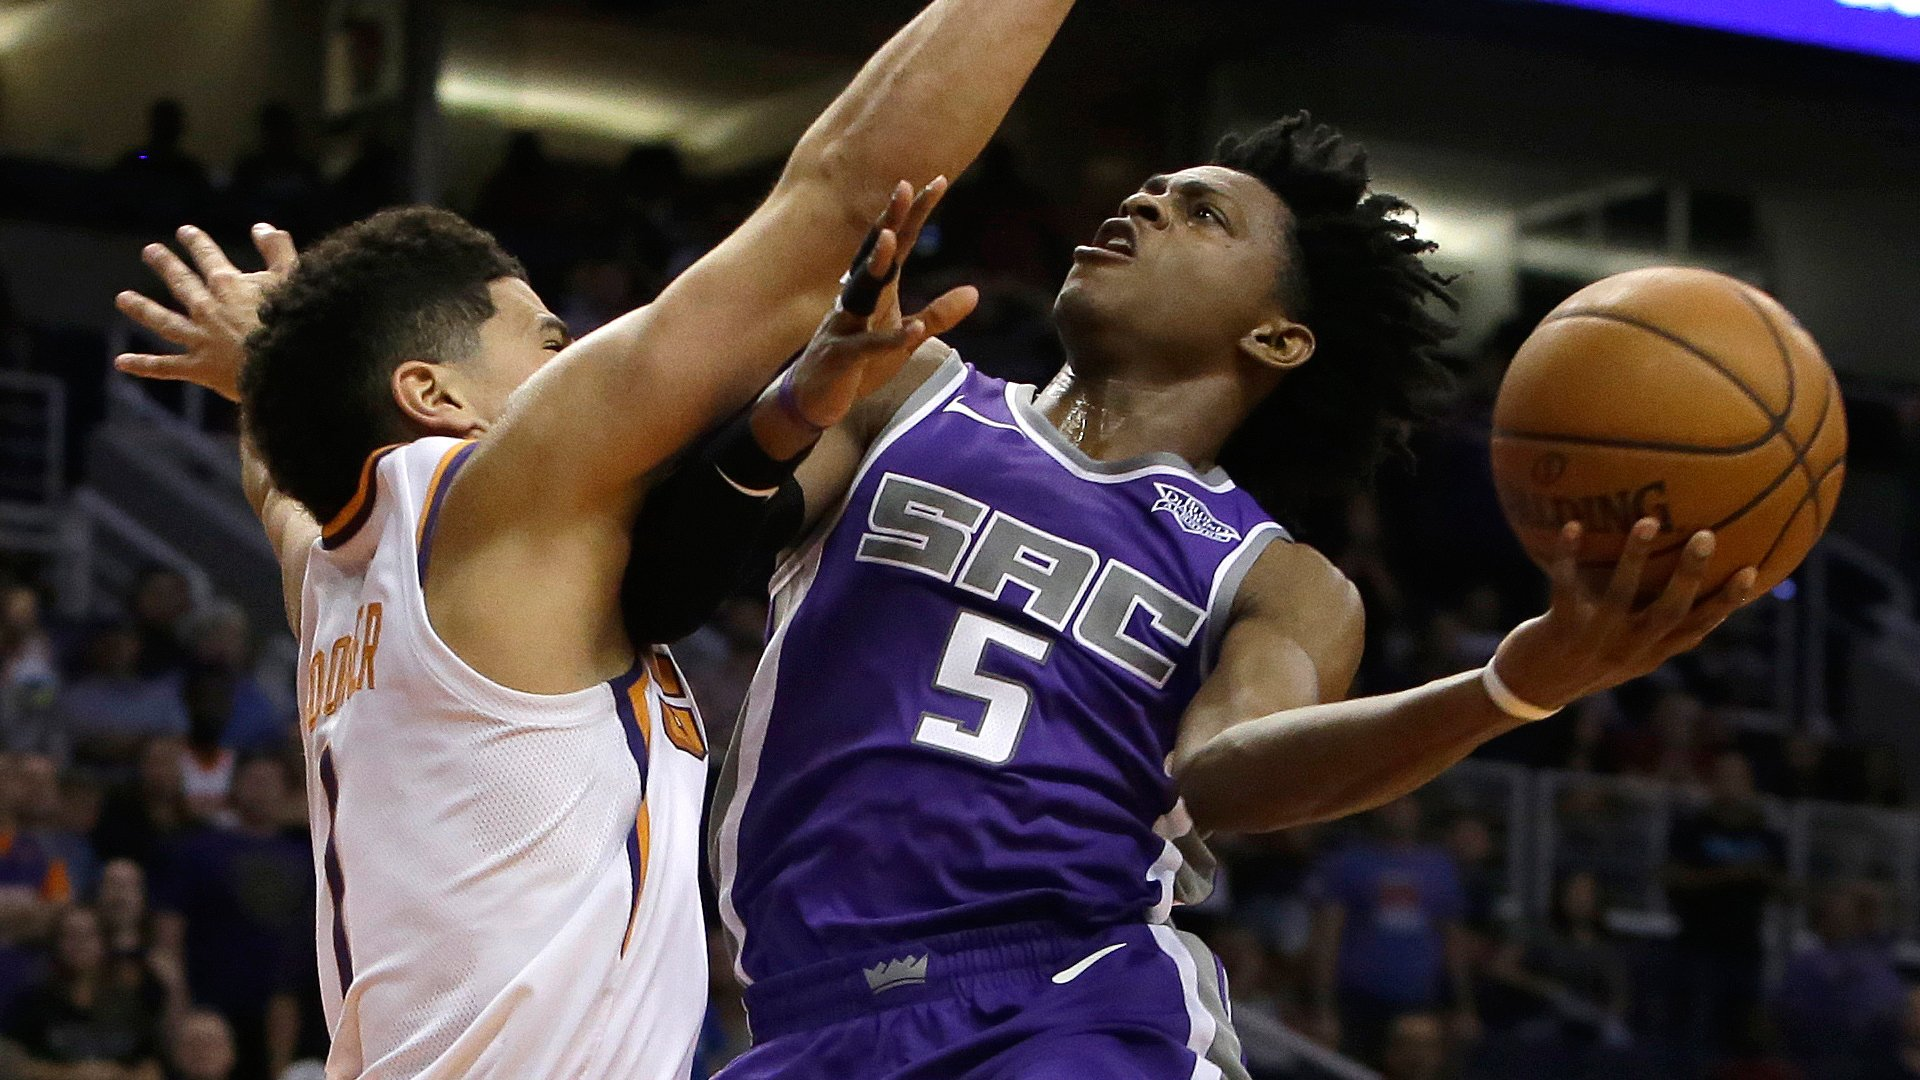 Bucket by bucket DeAaron Fox with a smooth 19 in loss to Suns 1920x1080